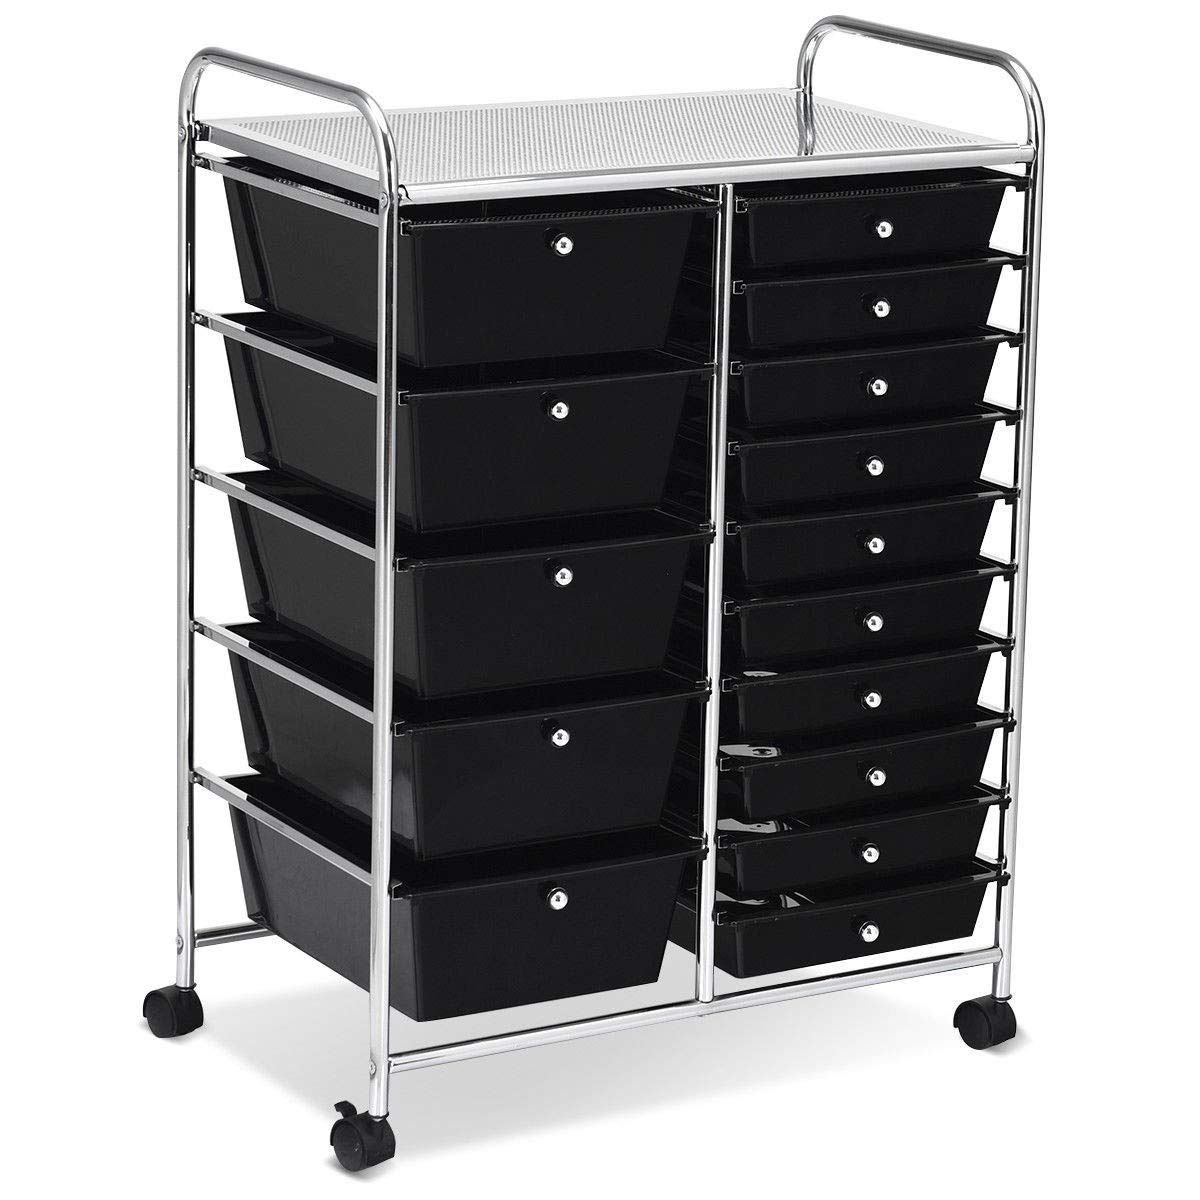 USA_BEST_SELLER 15-Drawer Utility Rolling Organizer Cart Multi-Use Storage Tools Scrapbook Paper (Black)